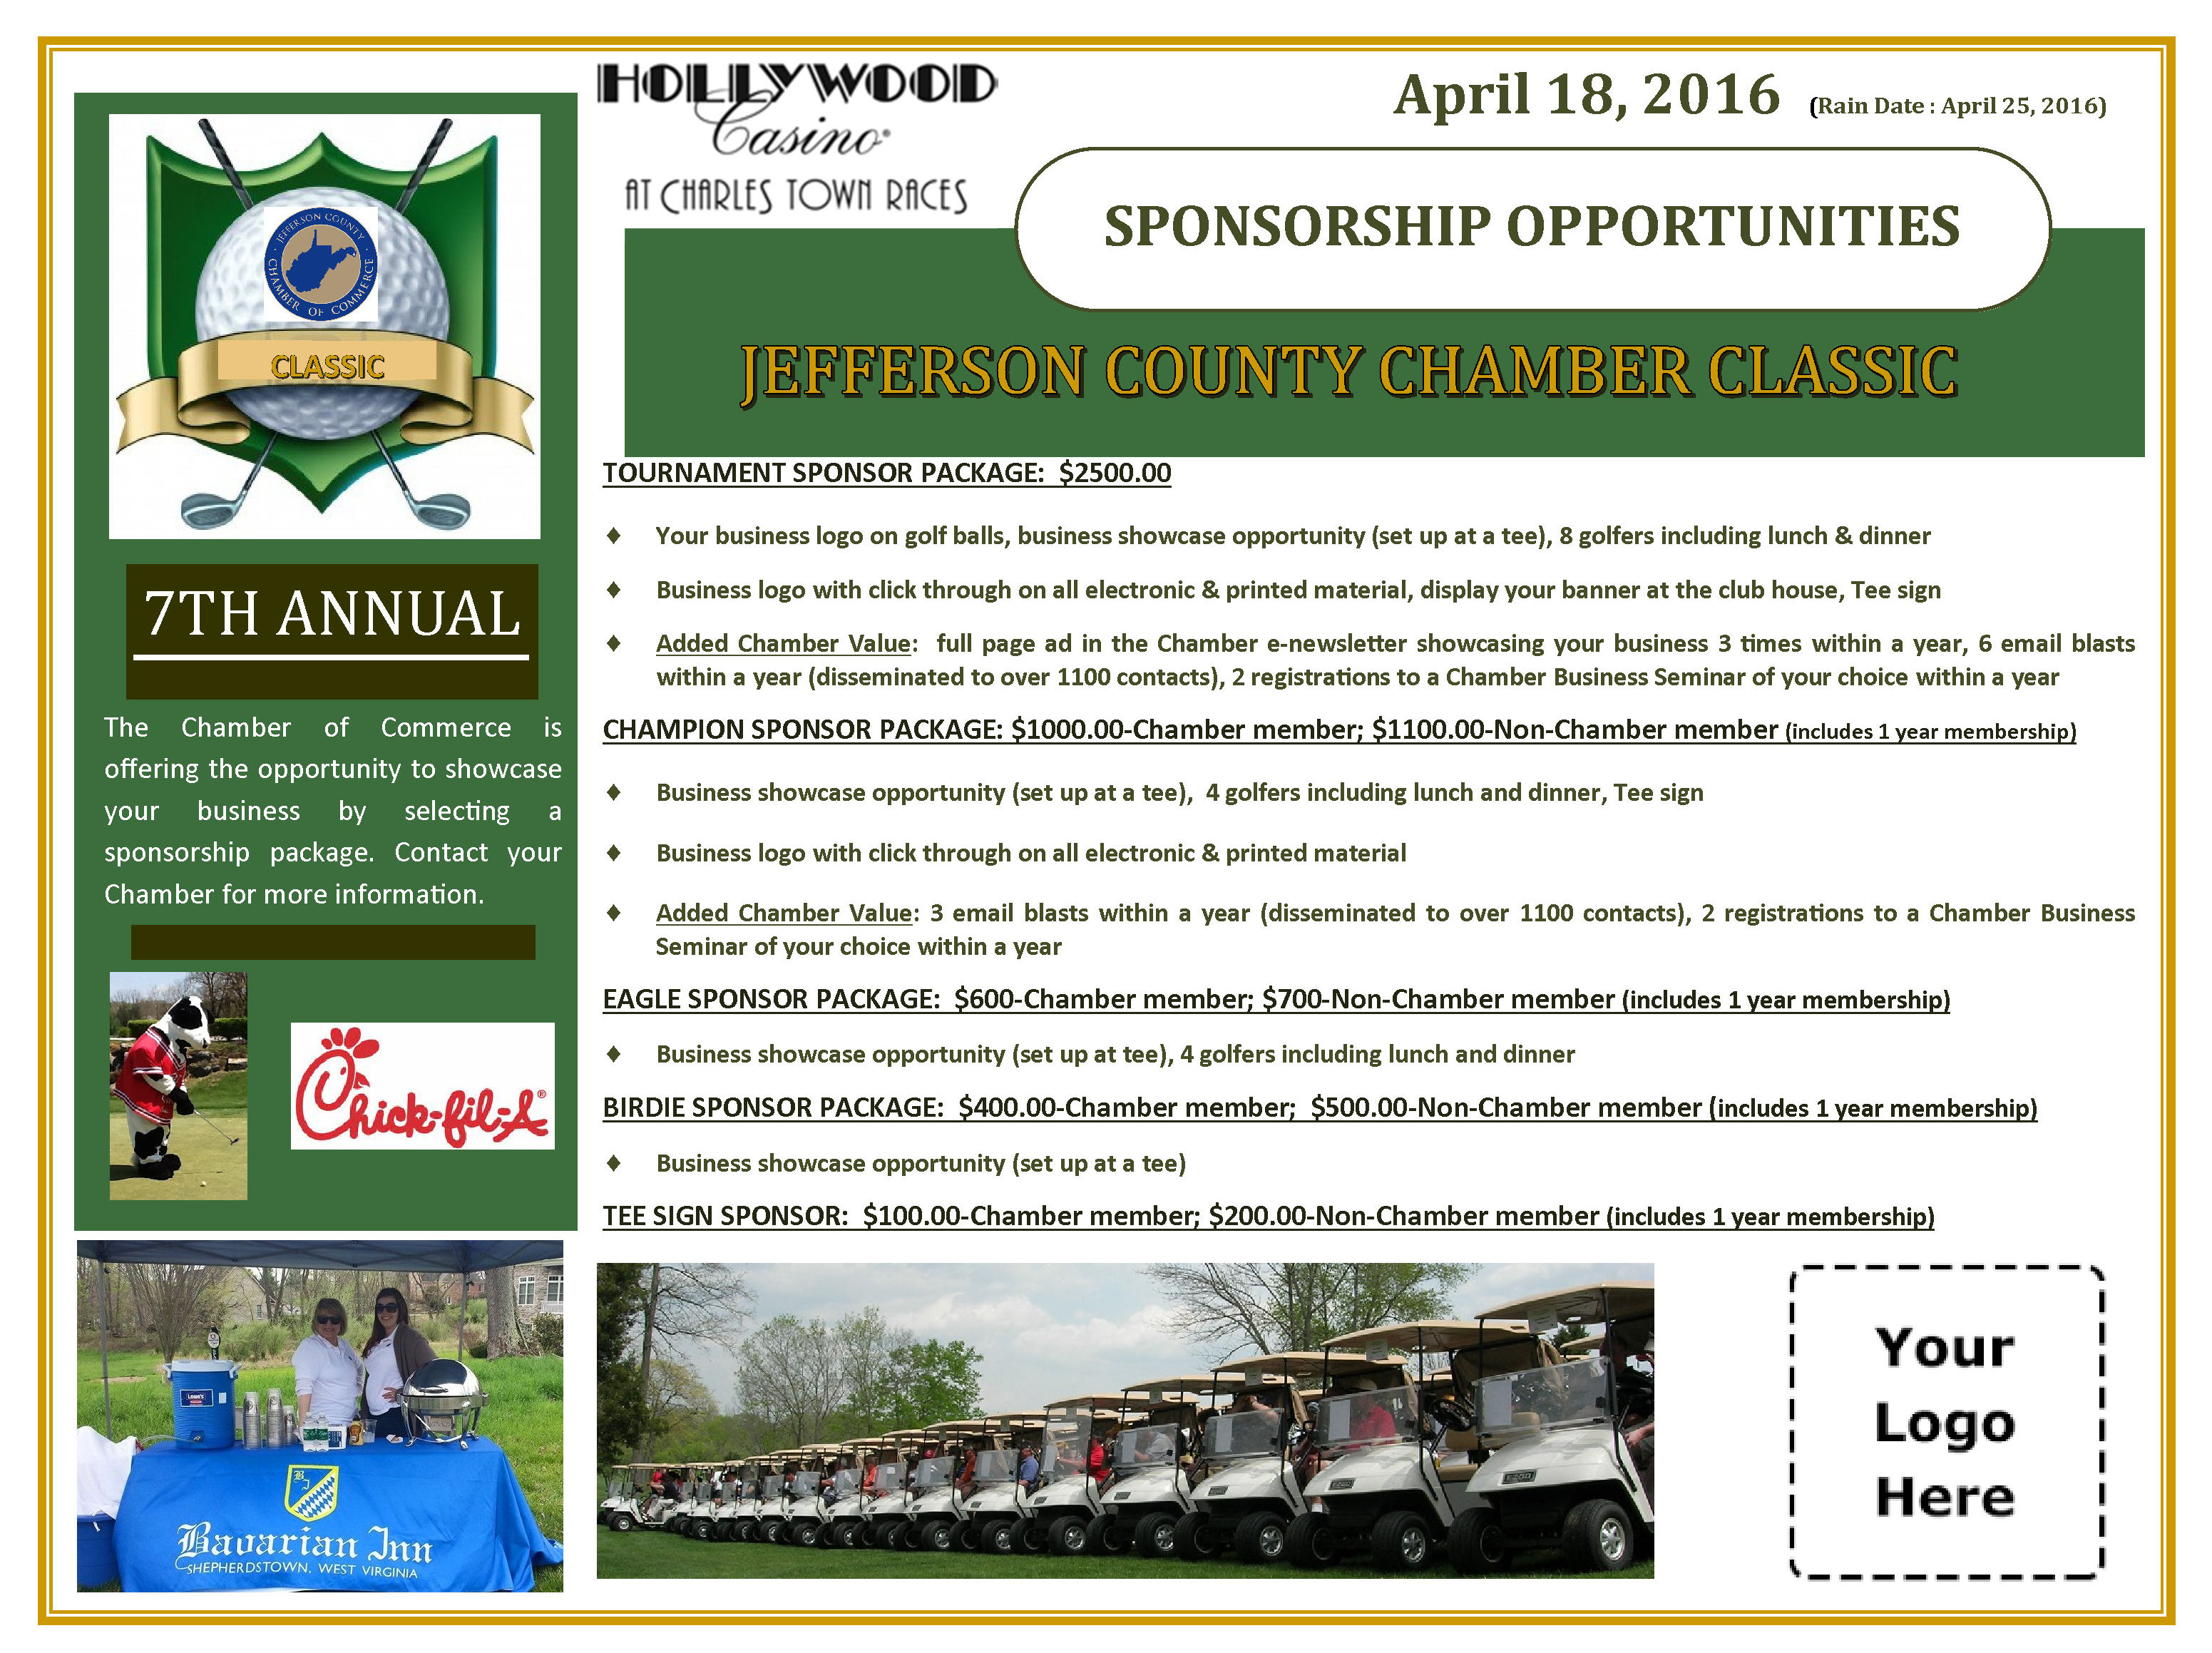 2016 Golf Tournament Sponsorship Flyer-open logo